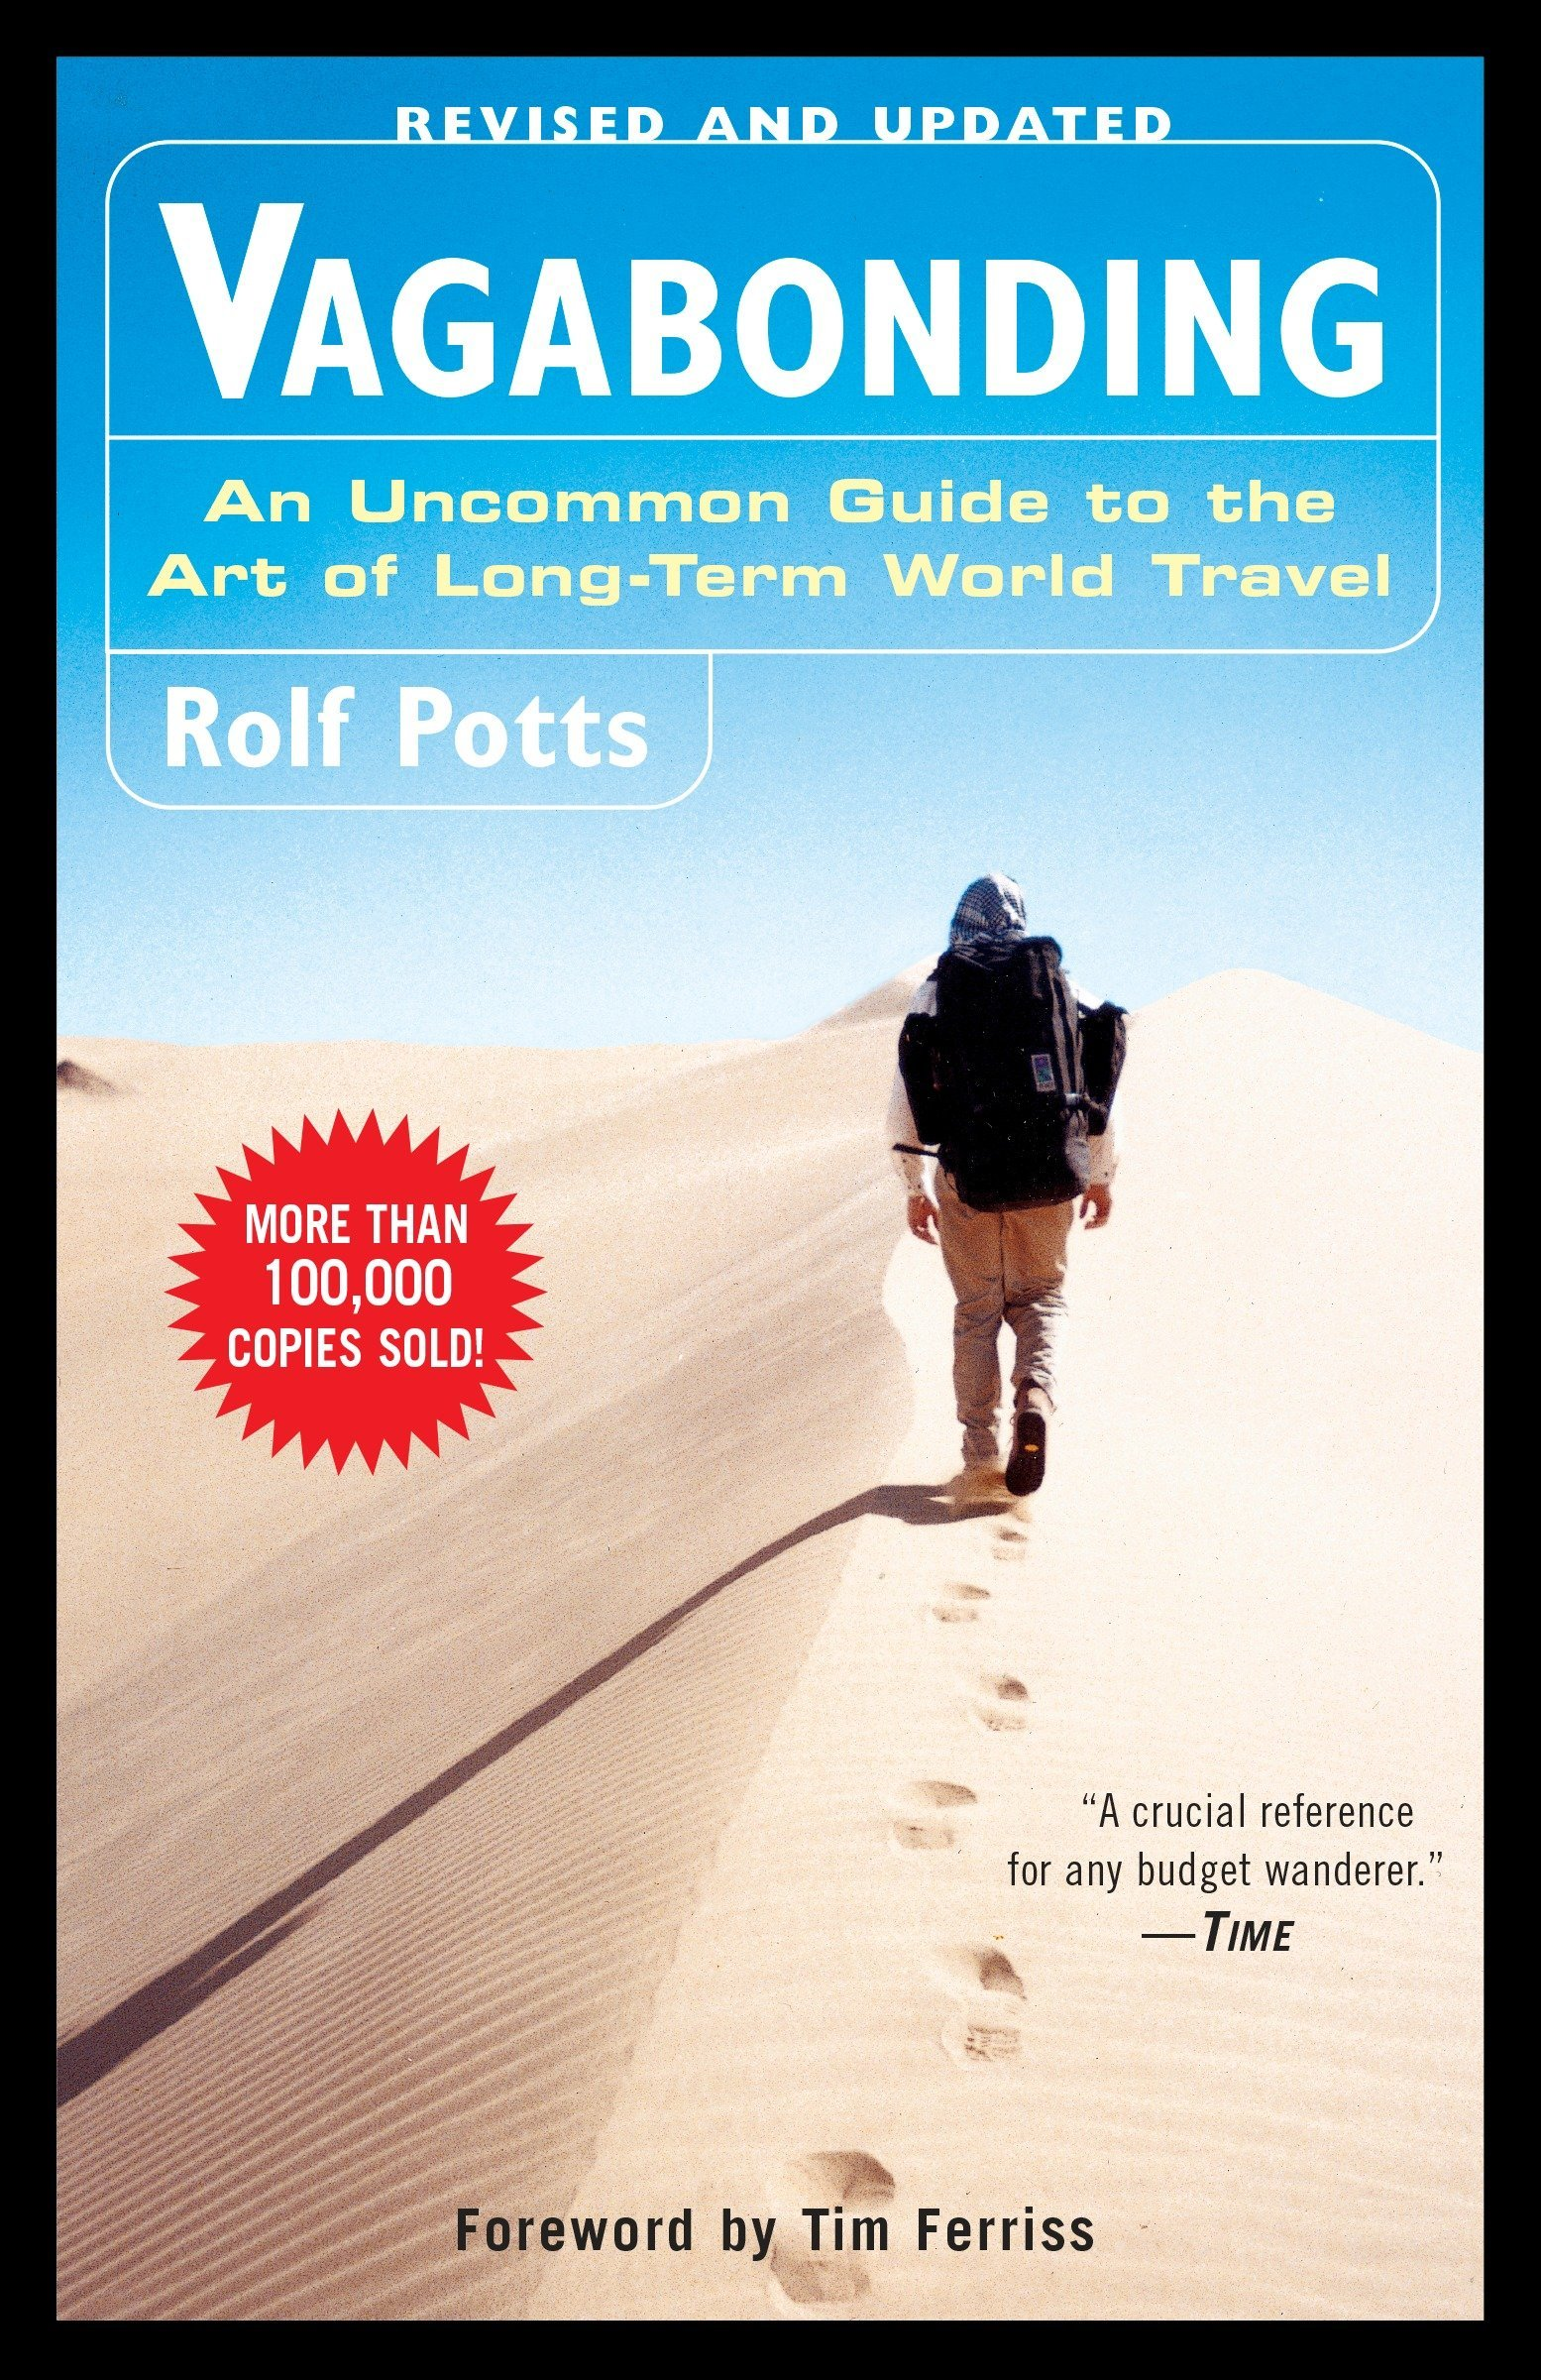 vagabonding: an uncommon guide to the art of long-term world travel - By Rolf PottsVagabonding is about taking time off from your normal life—from six weeks to four months to two years—to discover and experience the world on your own terms. Veteran shoestring traveler Rolf Potts shows how anyone armed with an independent spirit can achieve the dream of extended overseas travel. Potts gives the necessary information on:• financing your travel time• determining your destination• adjusting to life on the road• working and volunteering overseas• handling travel adversity• re-assimilating back into ordinary lifeNot just a plan of action, vagabonding is an outlook on life that emphasizes creativity, discovery, and the growth of the spirit.